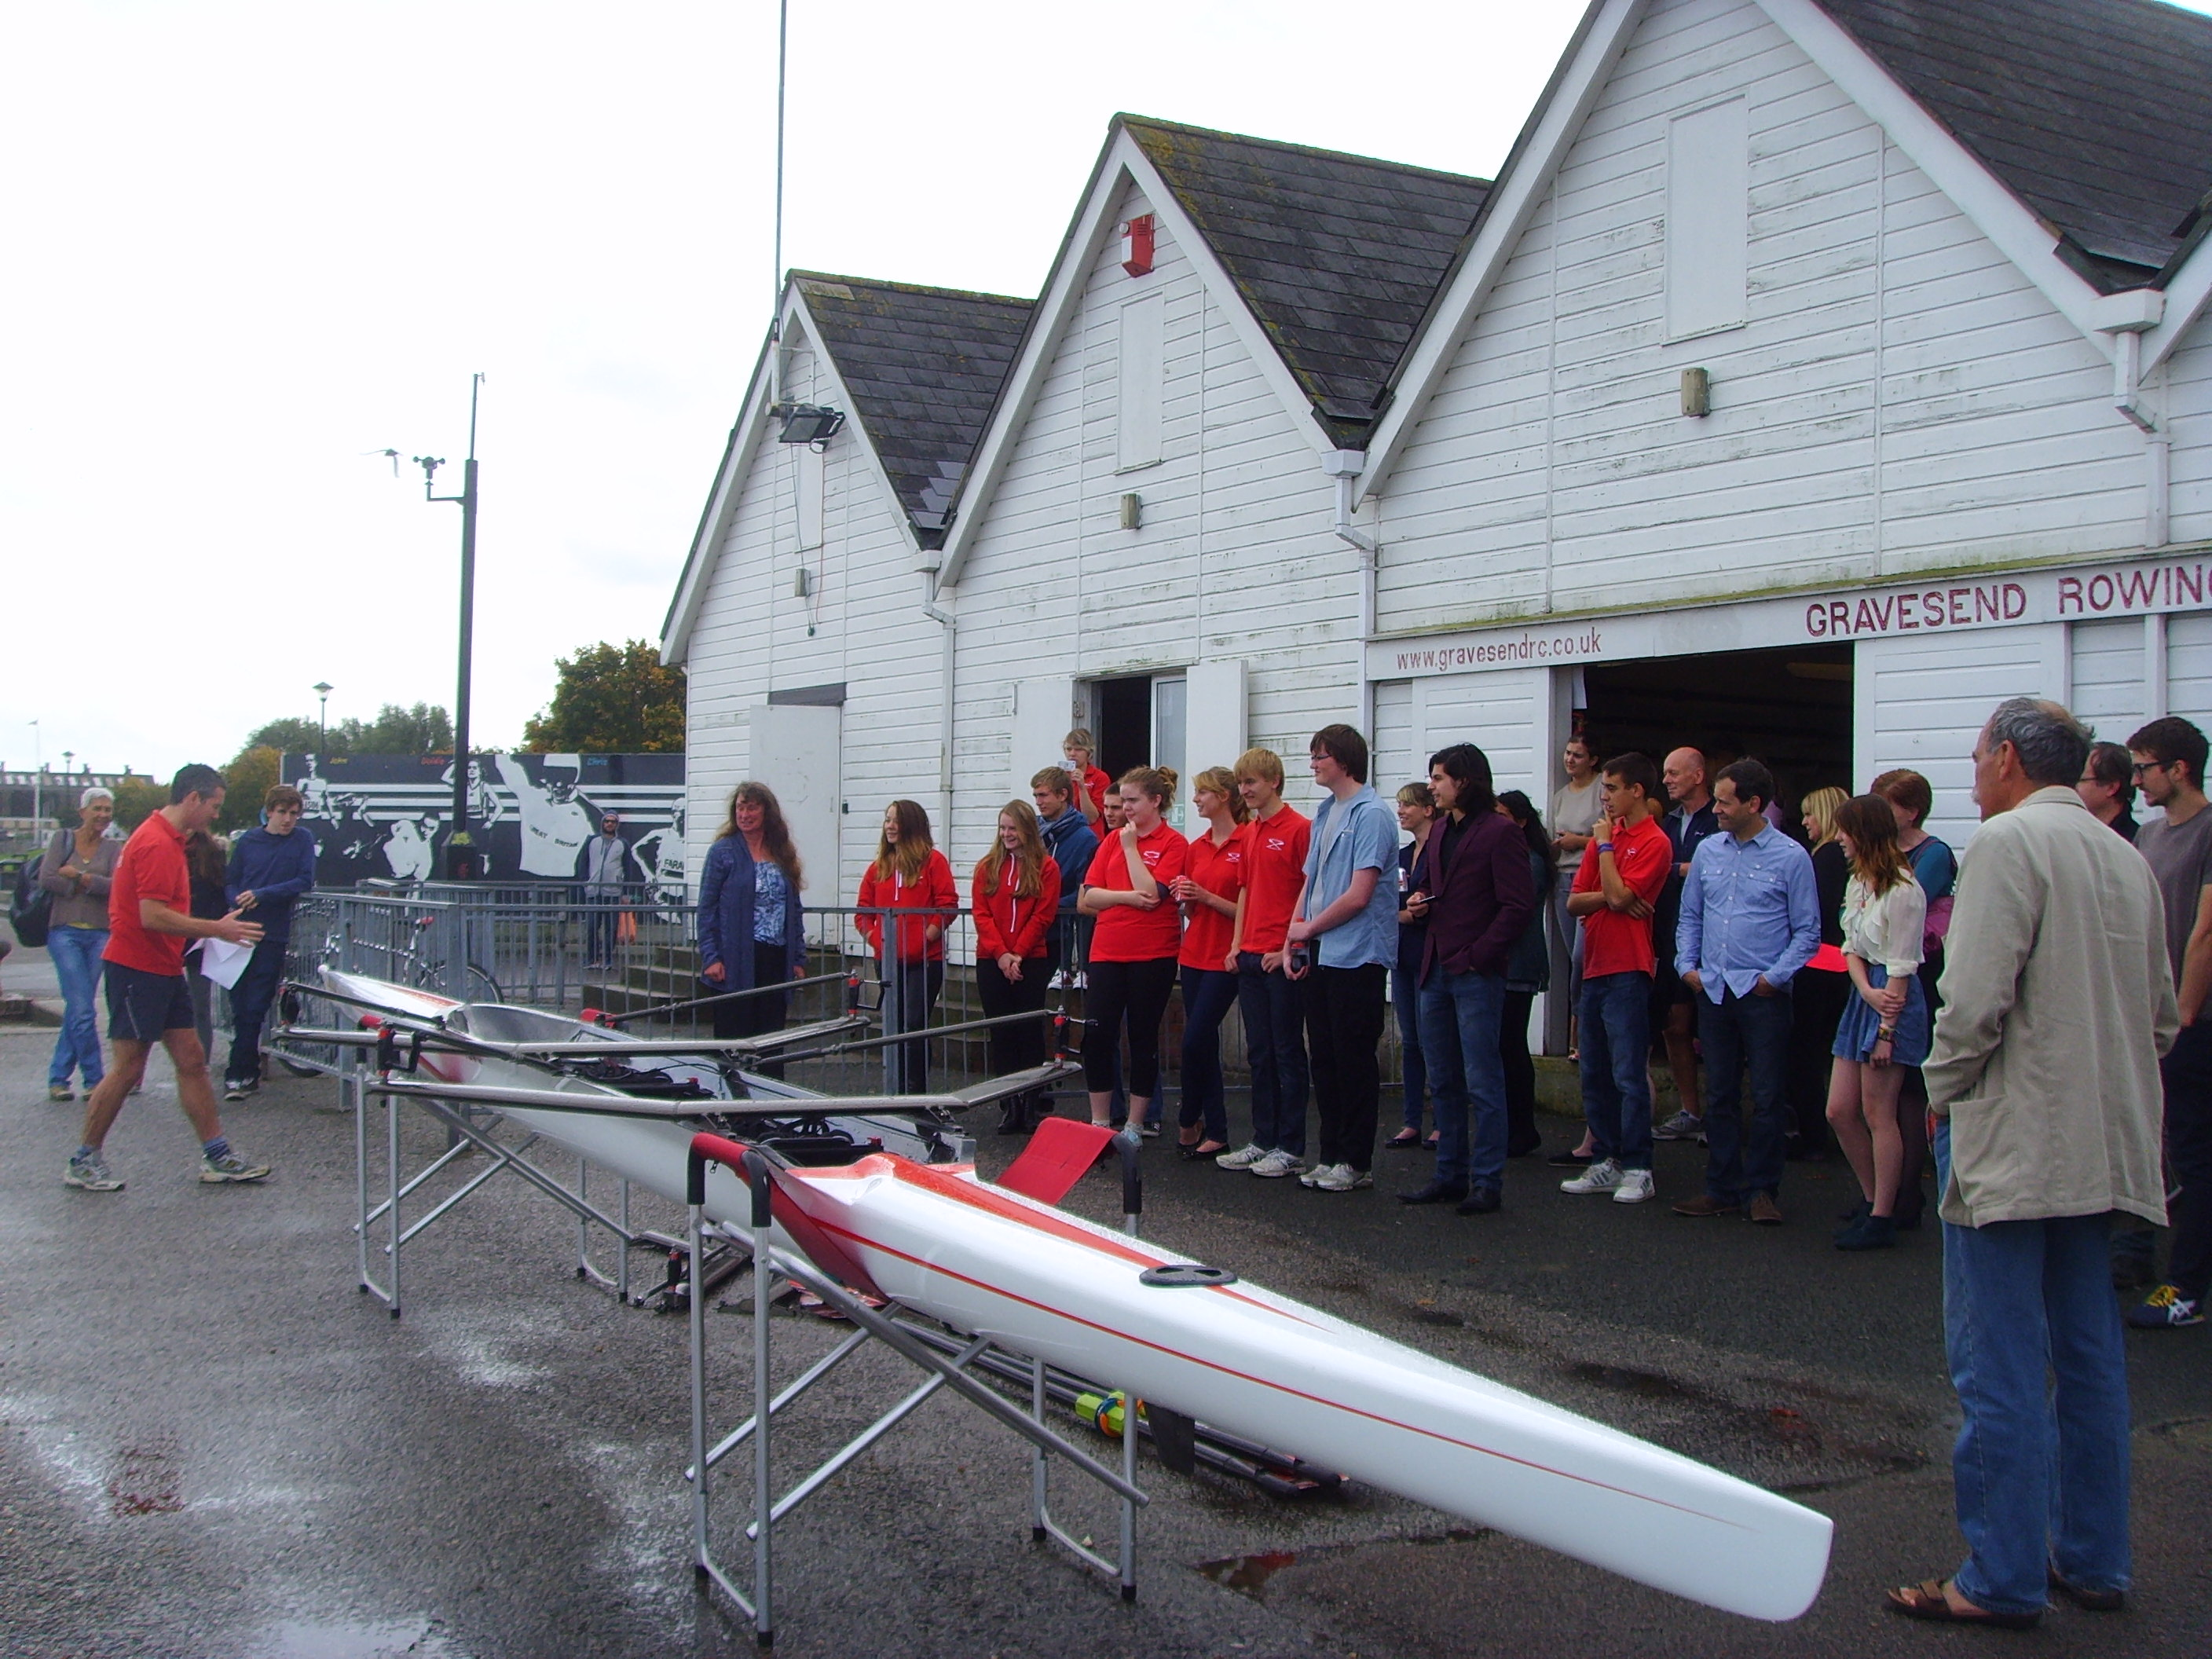 Gravesend Rowing Club